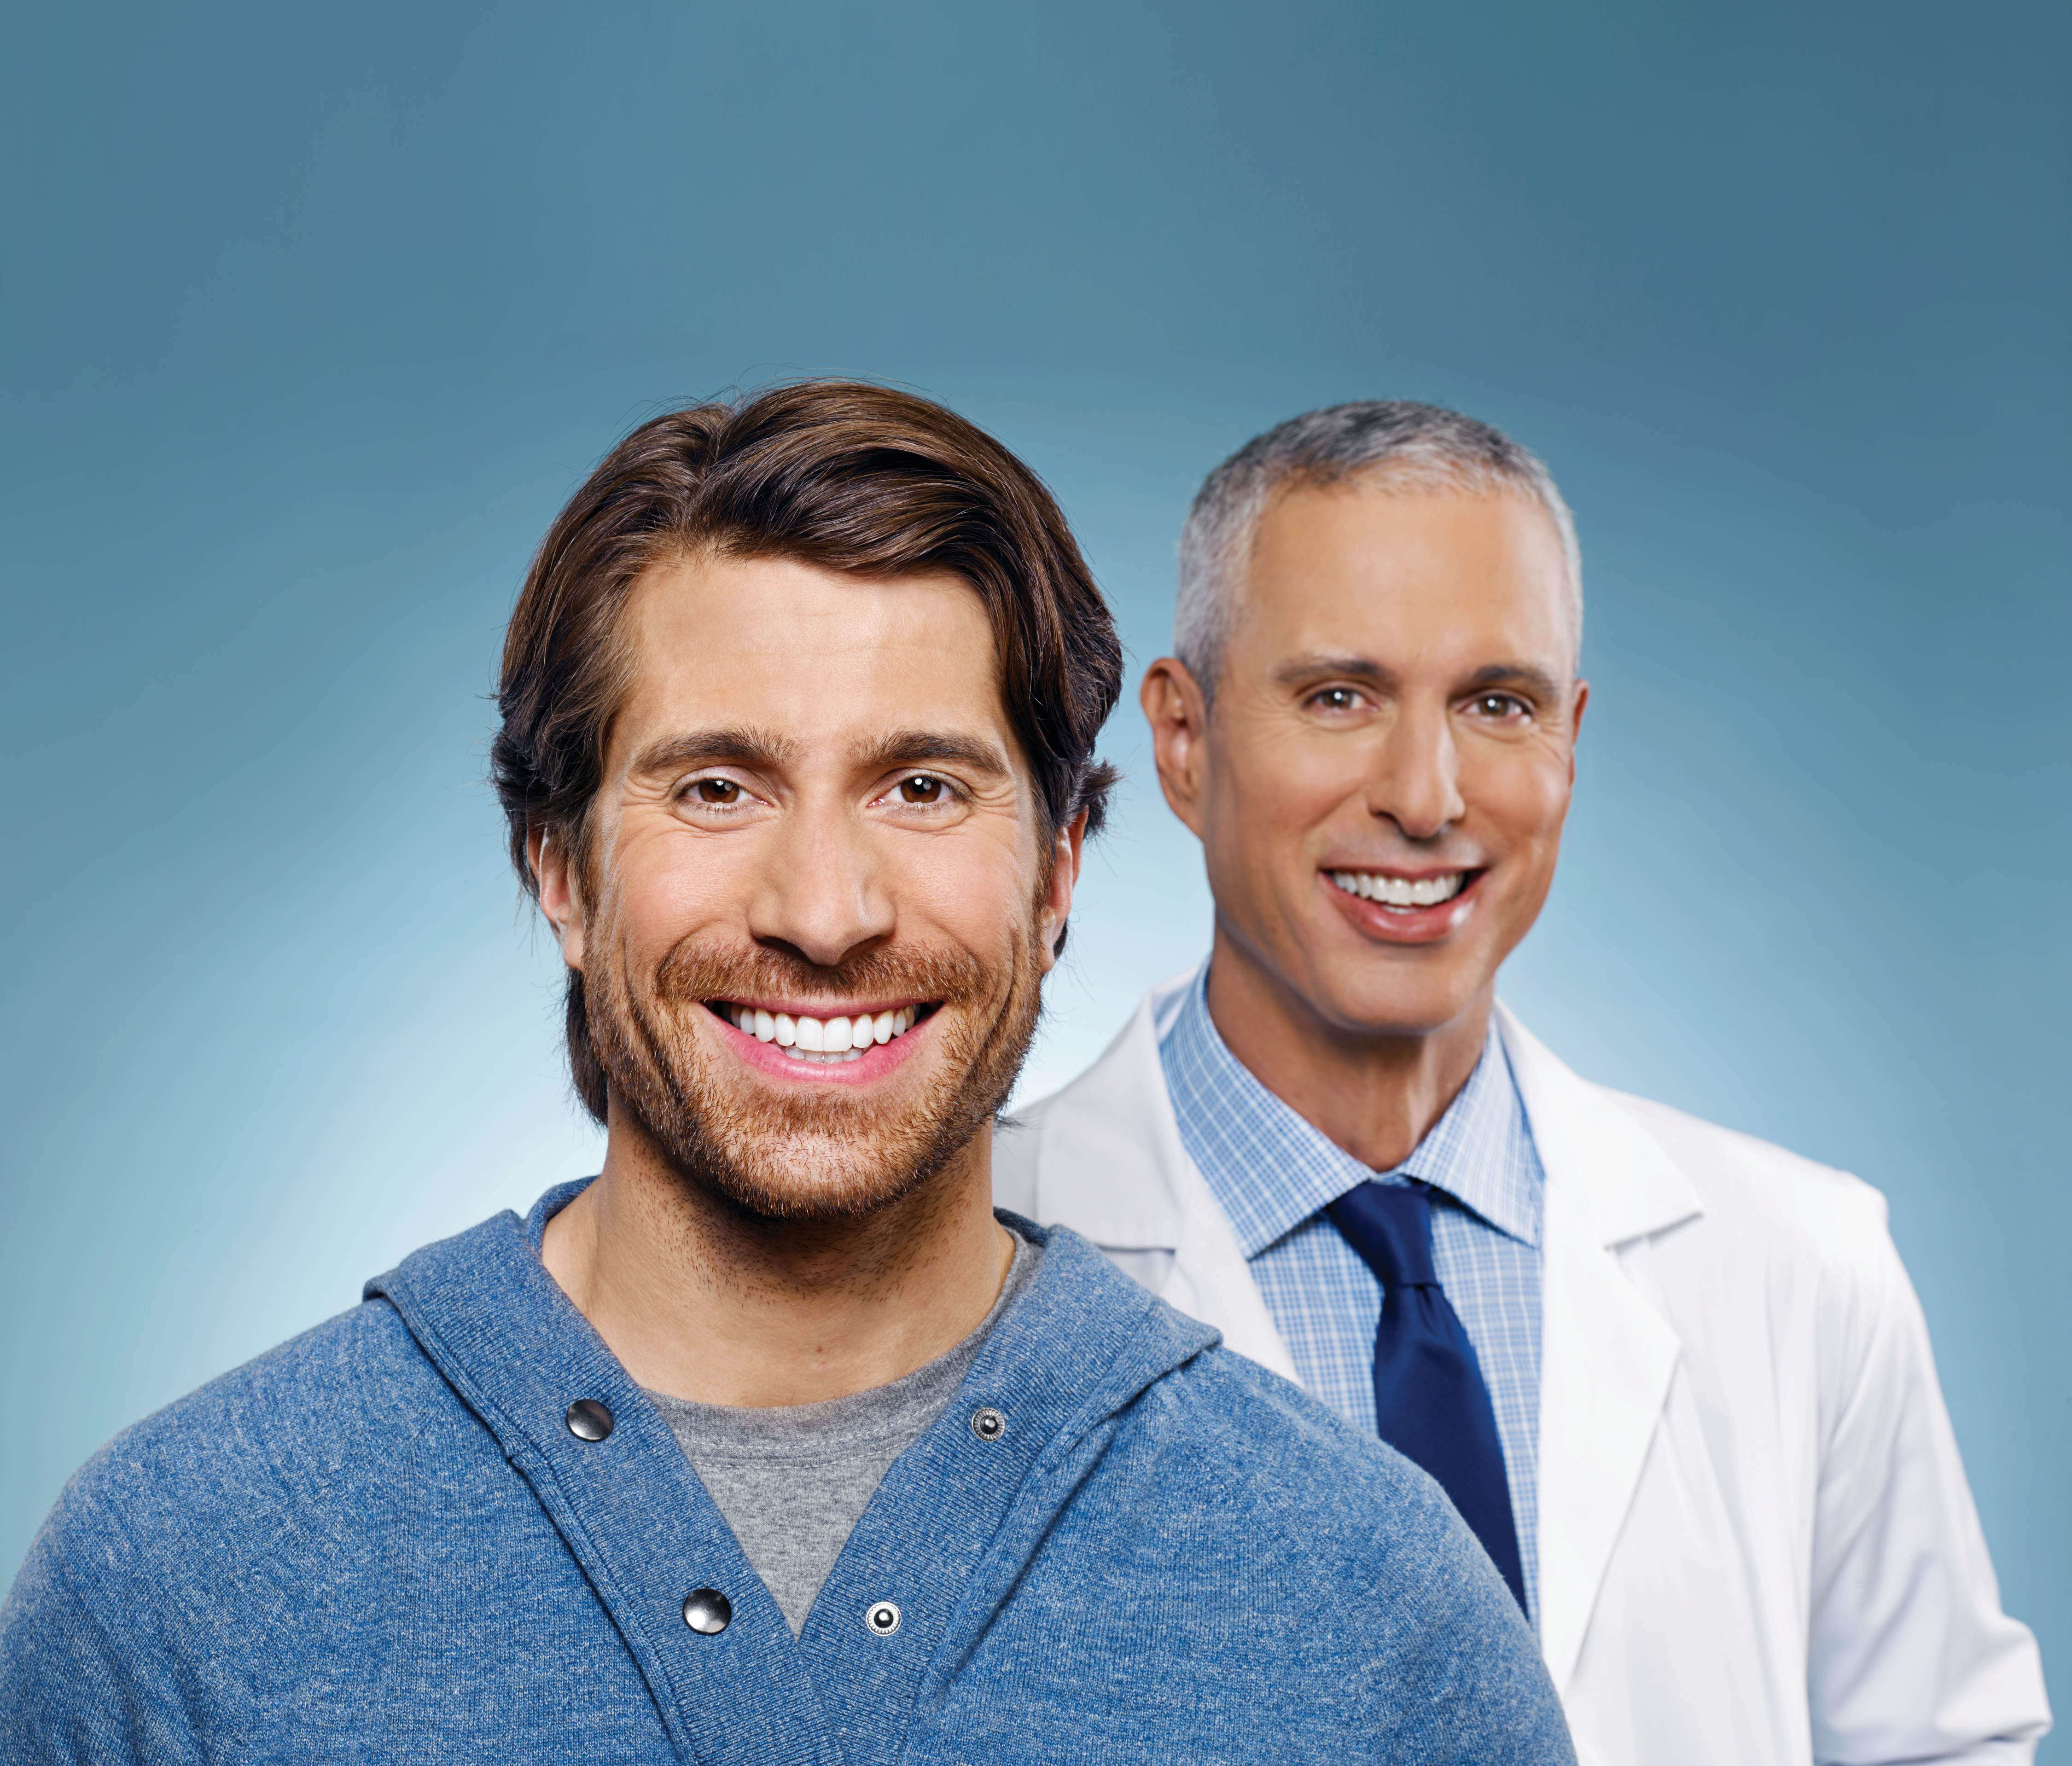 Finding the Perfect Family Dentist